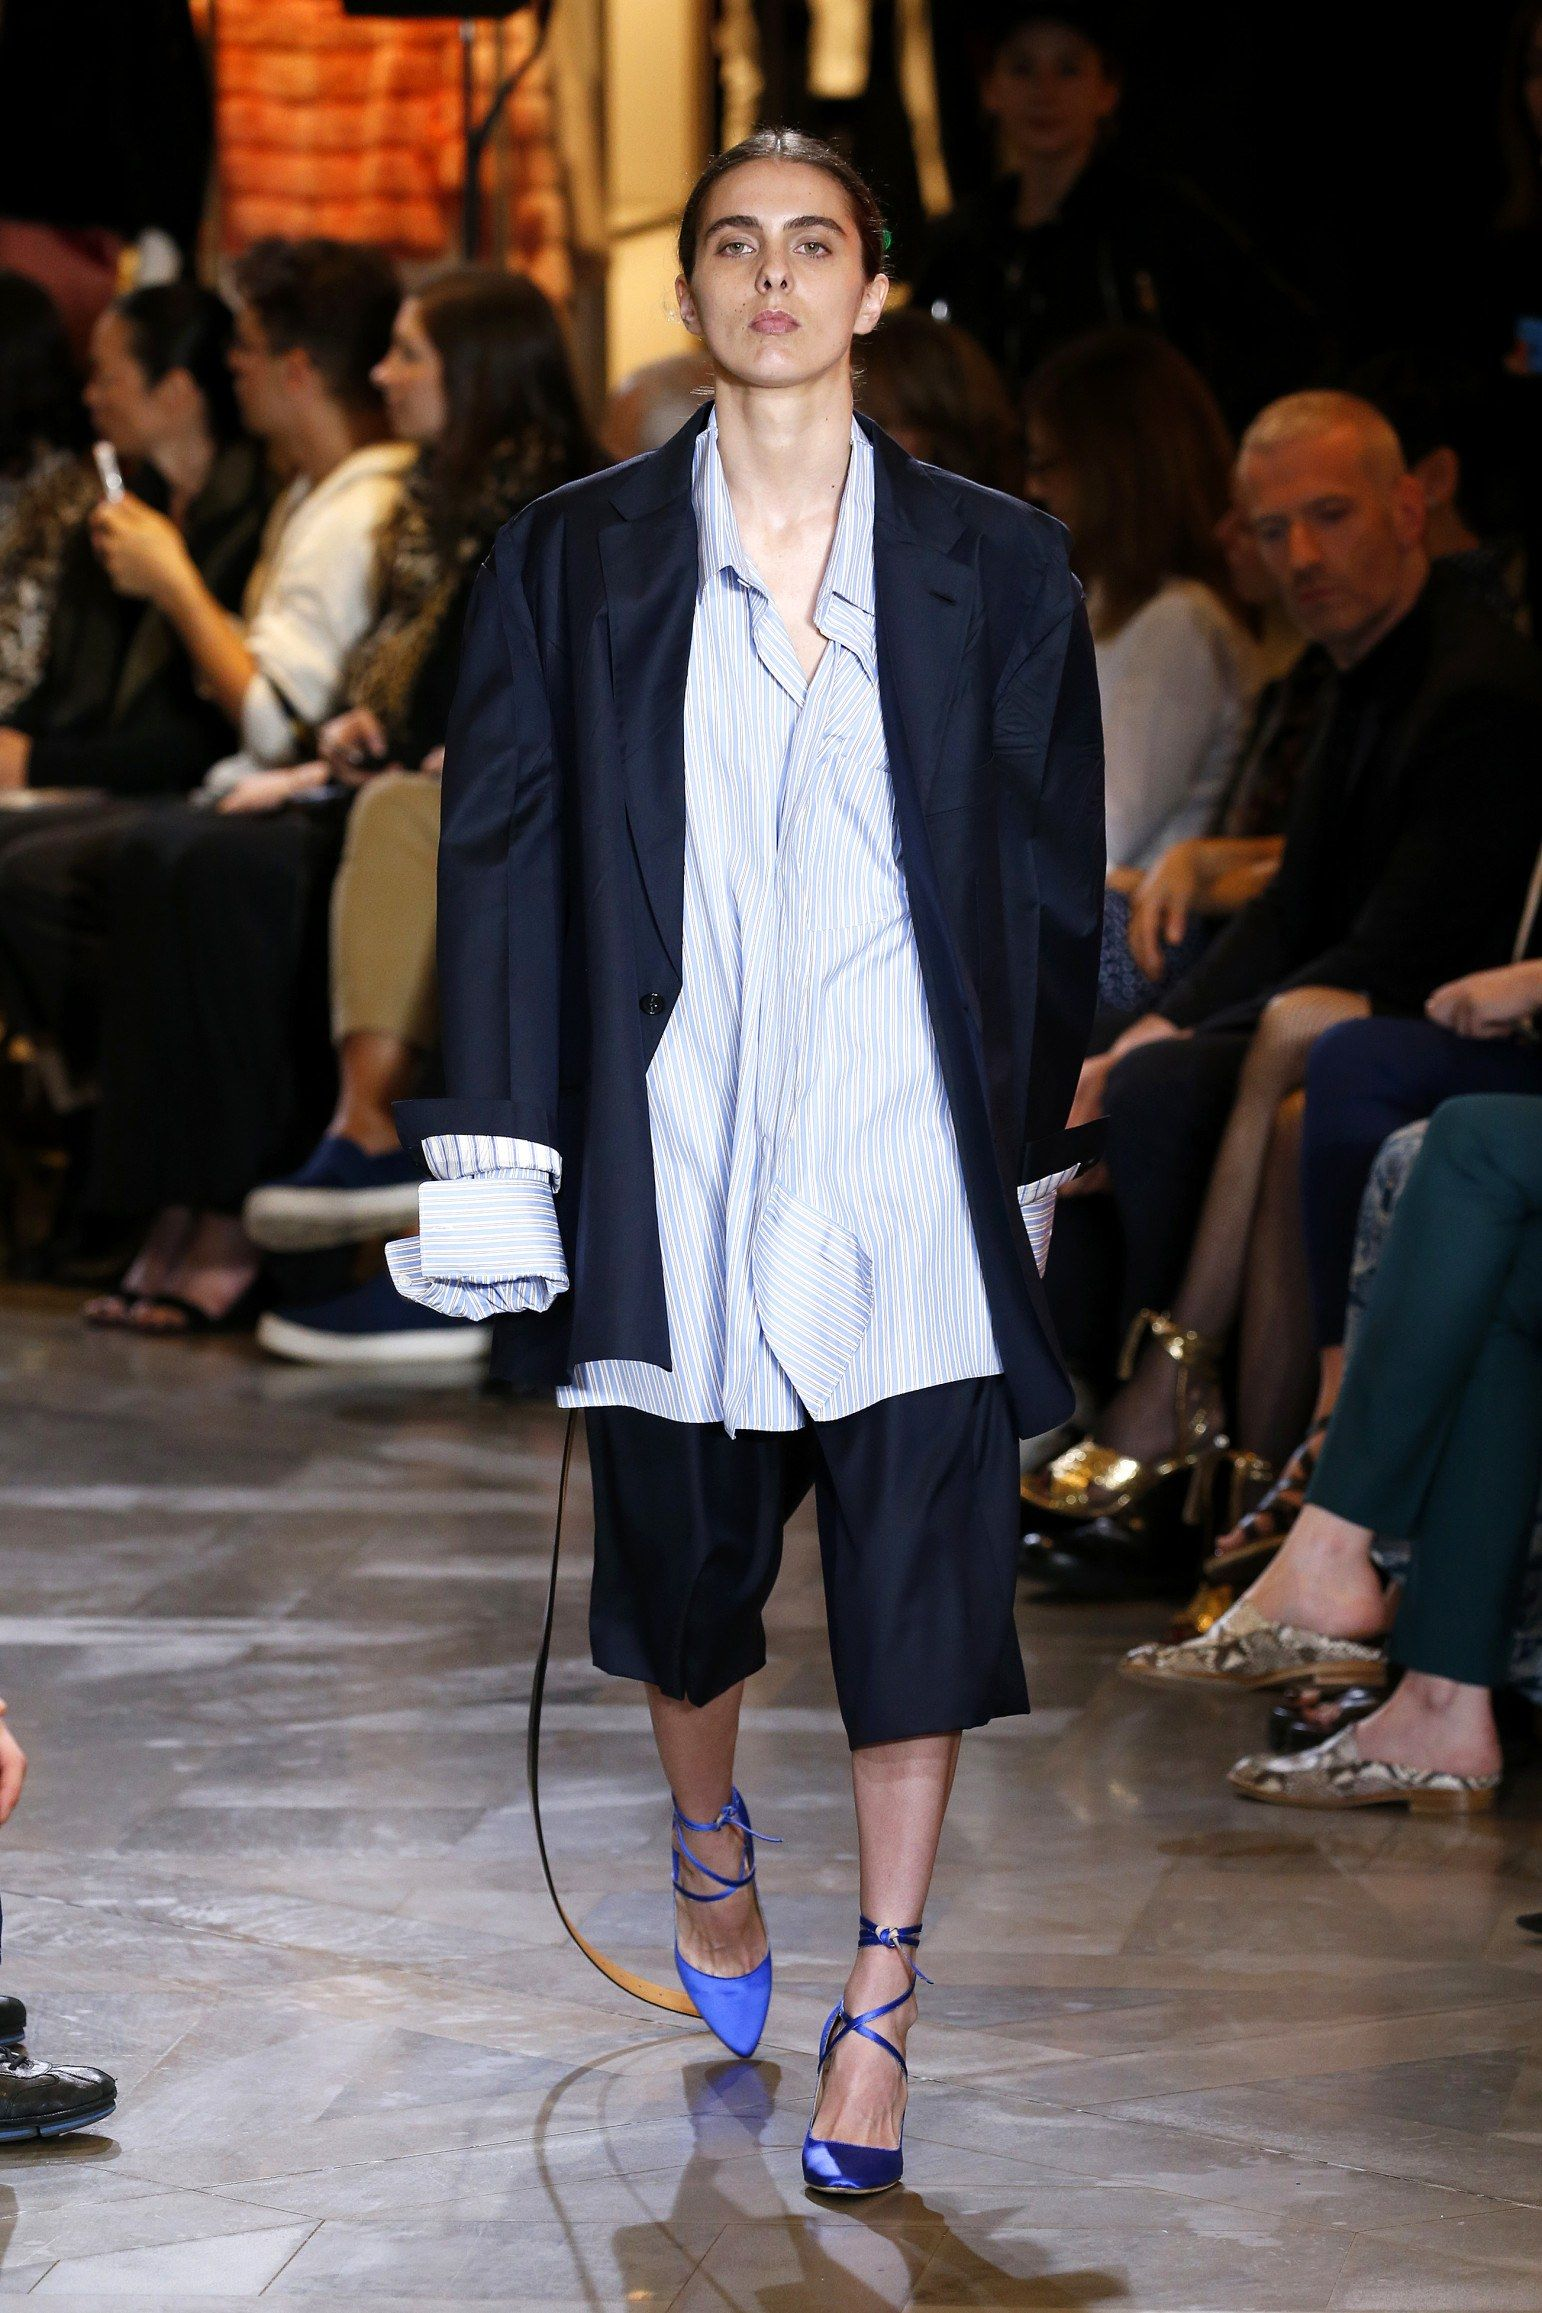 Next Spring, Men Will Have Their Pick of High Heels